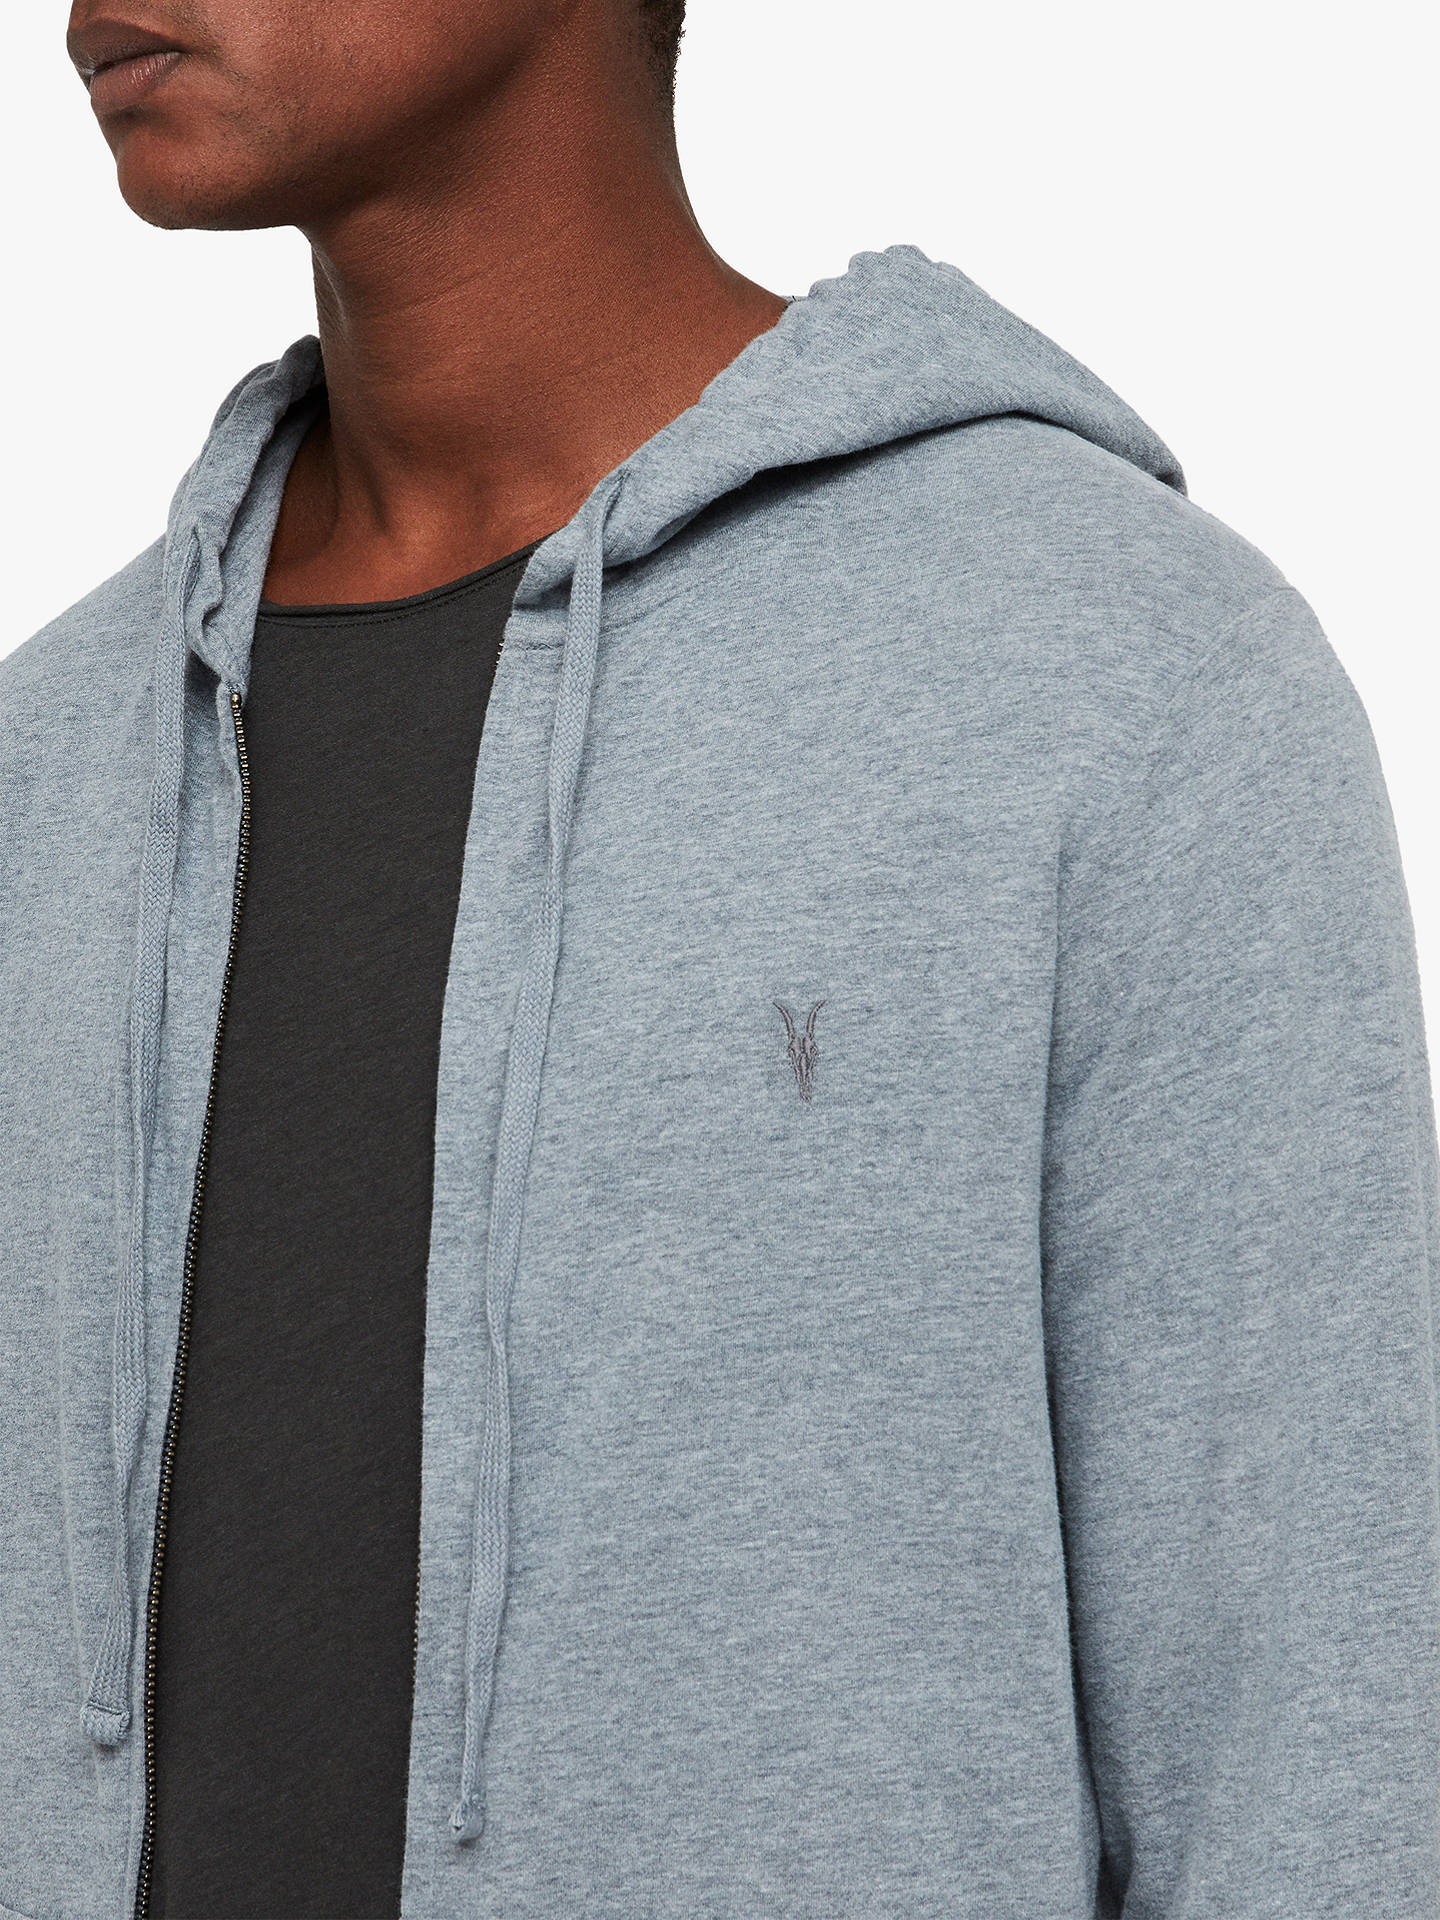 BuyAllSaints Brace Full Zip Hoodie, Arctic Blue Marl, M Online at johnlewis.com